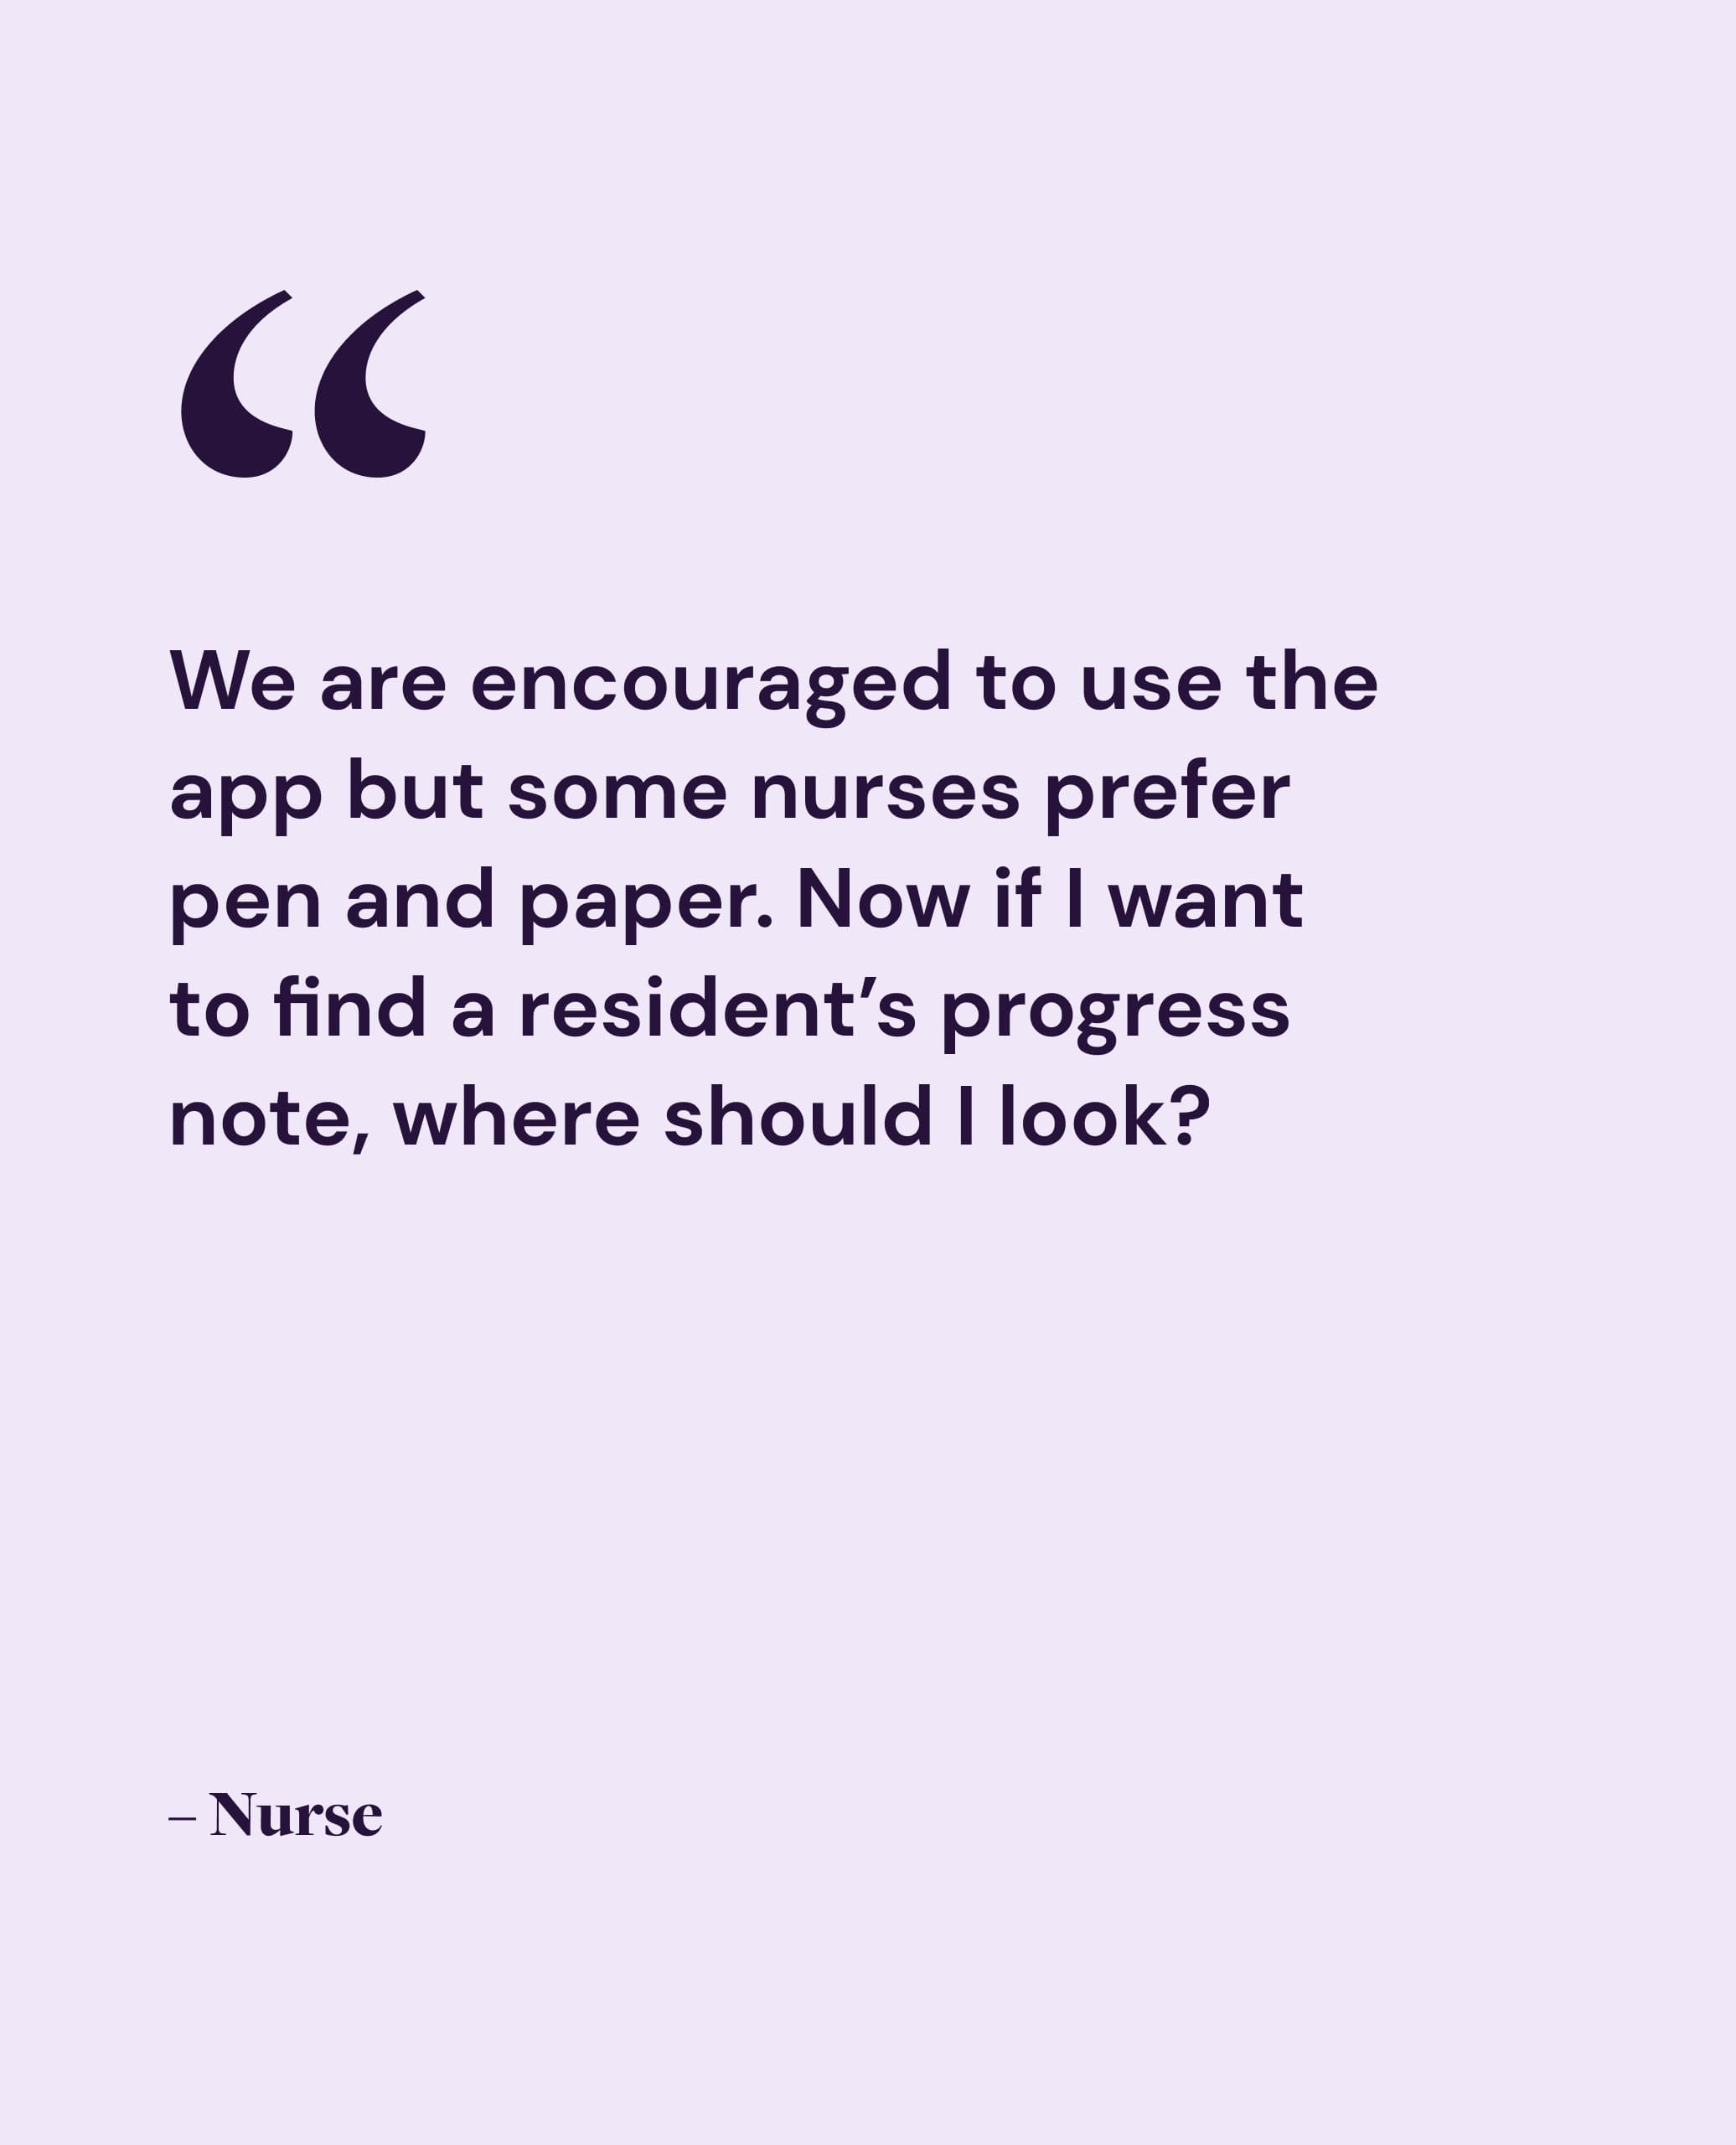 a quote that reads: we are encouraged to use the app but some nurses prefer pen and paper. now if i want to find a resident's progress note, where should i look?